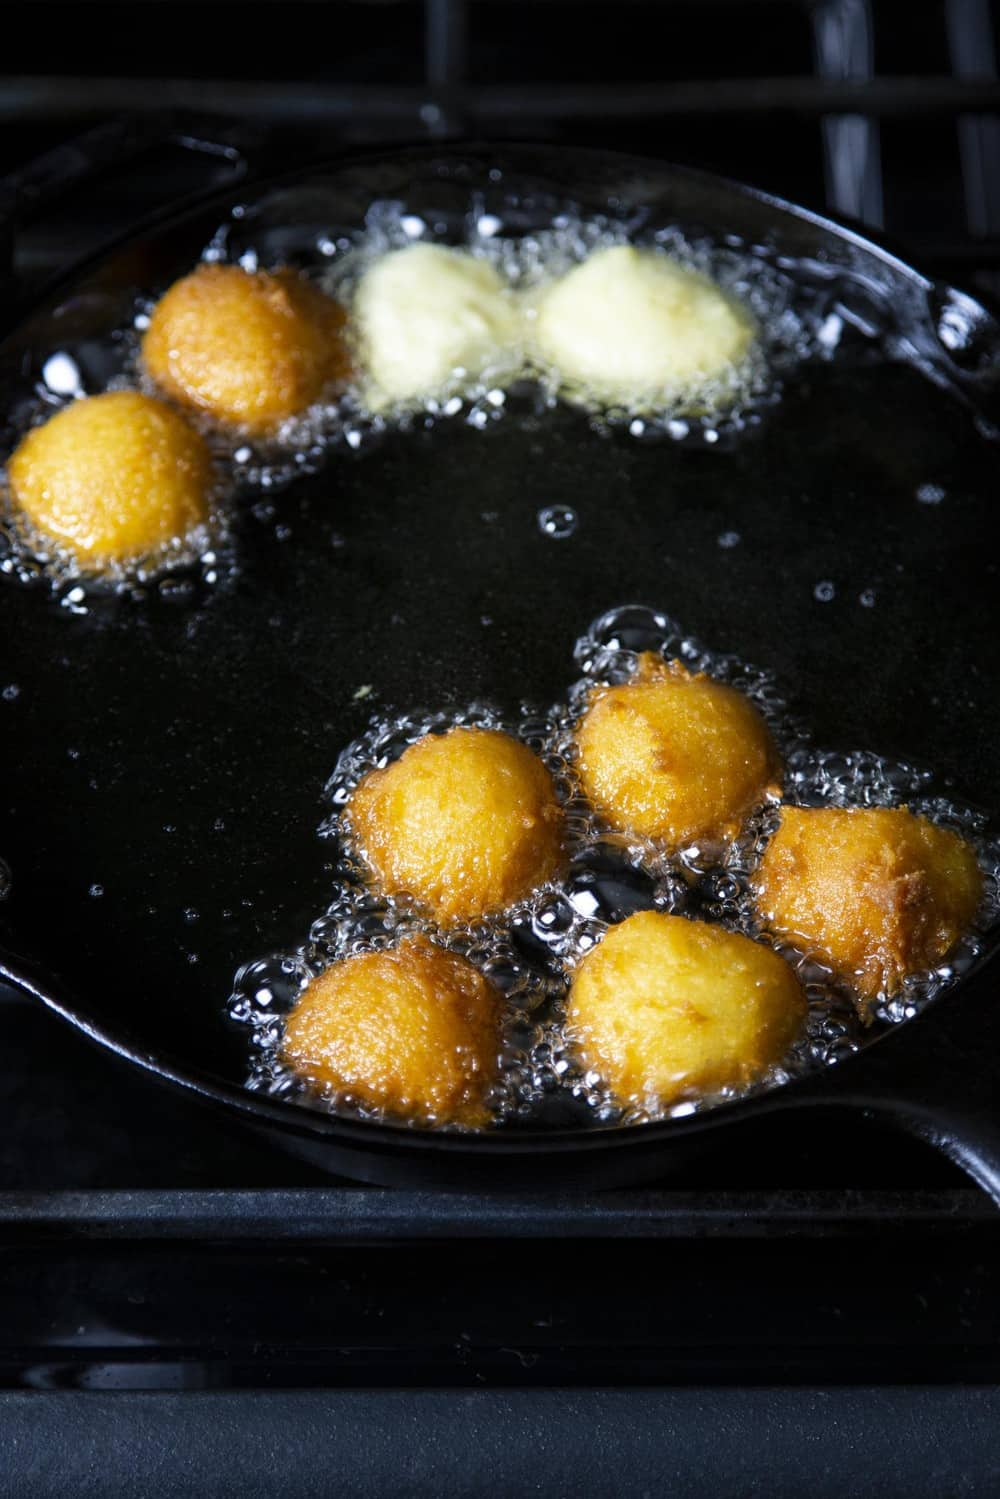 Donut holes frying in a pan of oil.